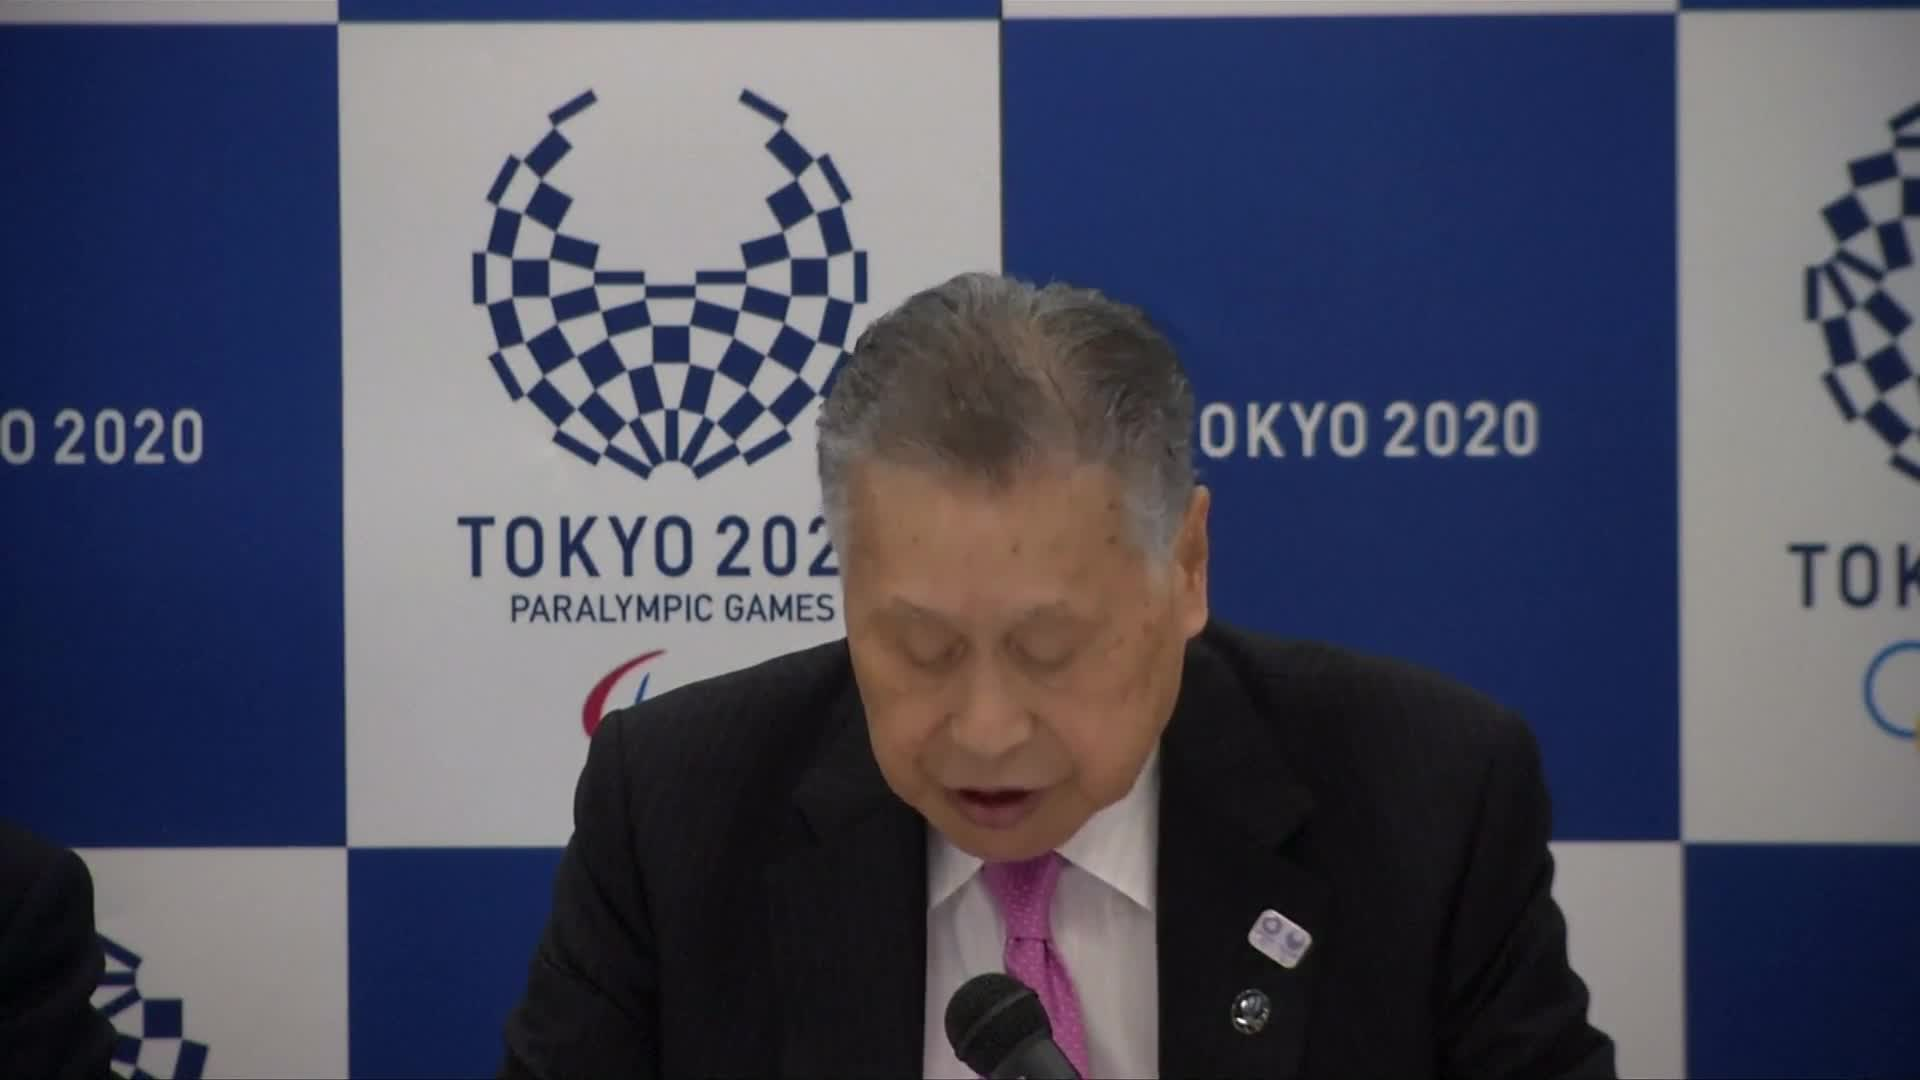 President of Tokyo 2020 welcomes the golf venue's decision to accept female members